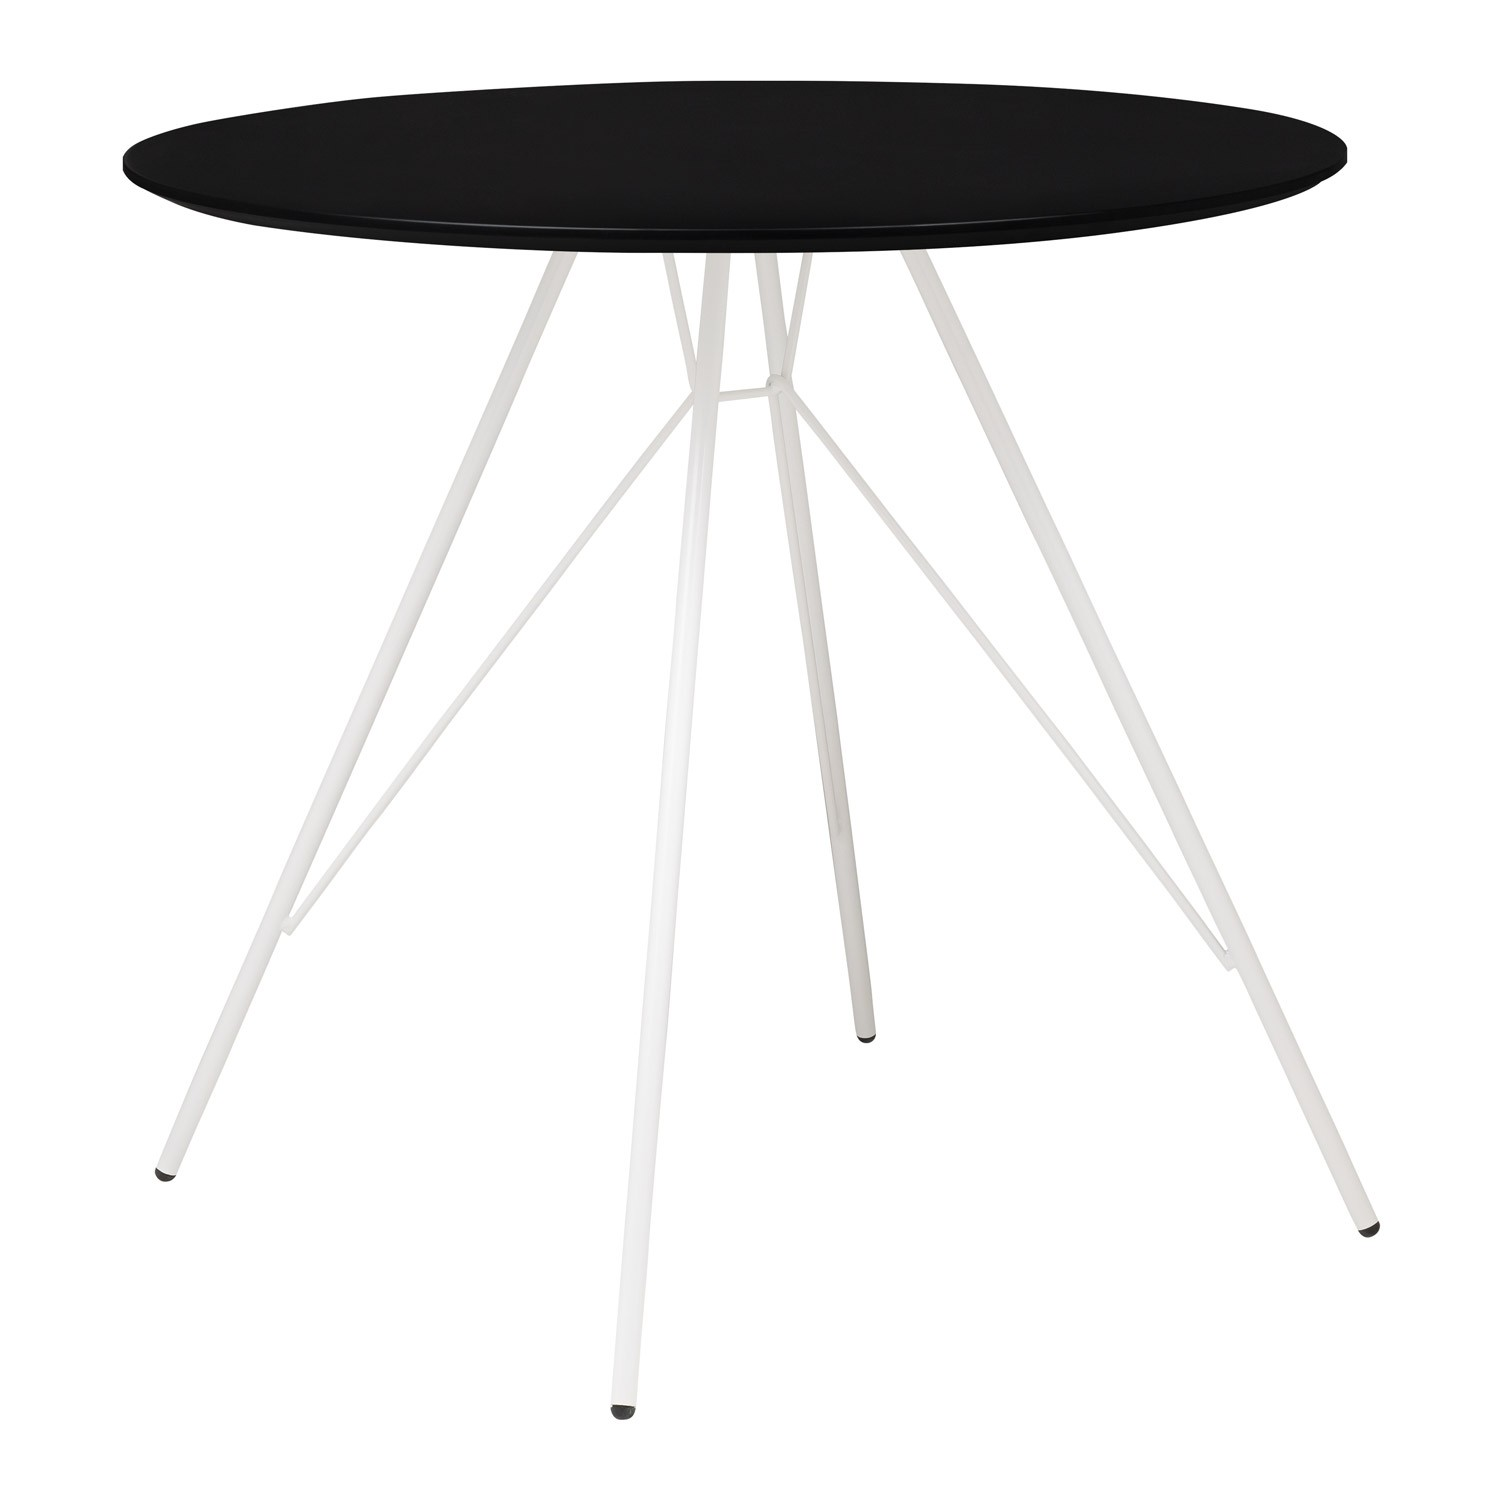 Yäh Metal Table, gallery image 1